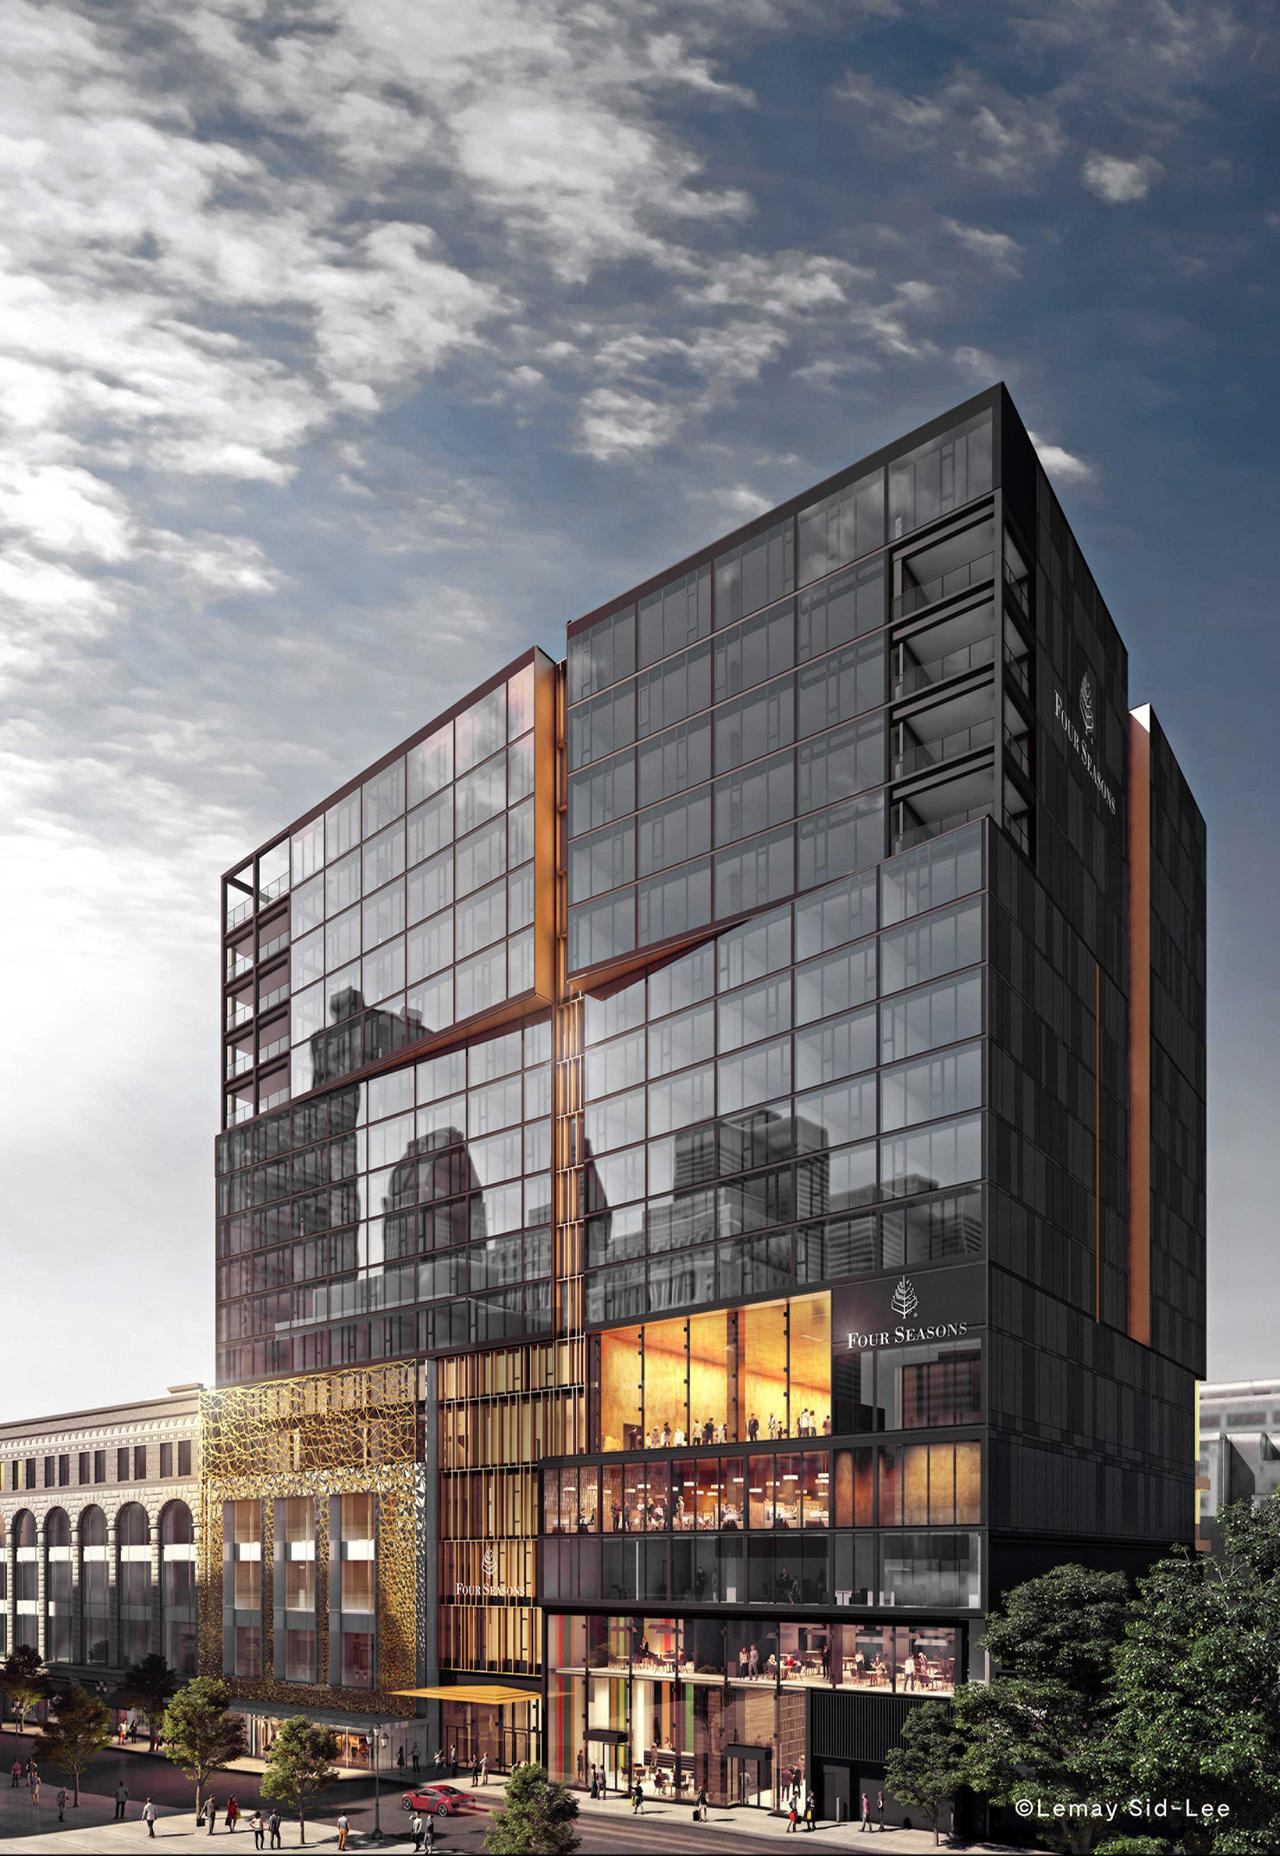 The 169-bedroom Four Seasons, swathed in black with metallic ribbons, was designed by Lemay and Sid Lee Architecture